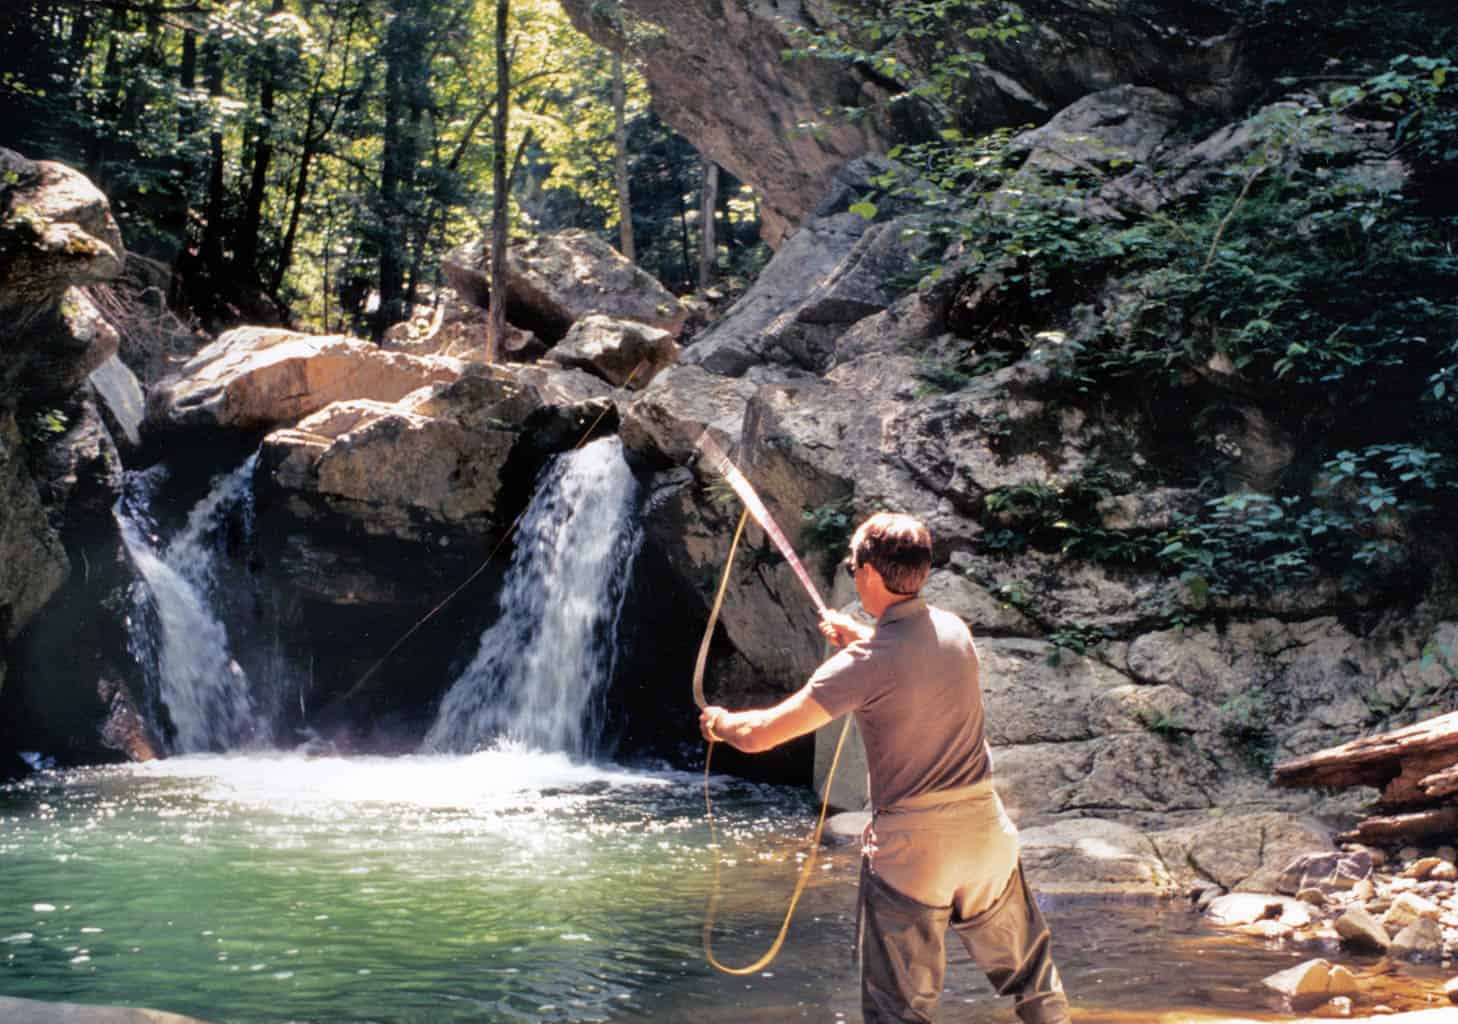 Fishing– Bath County is home to some of the most pristine mountain trout streams in Virginia and is a beloved haven for anglers.